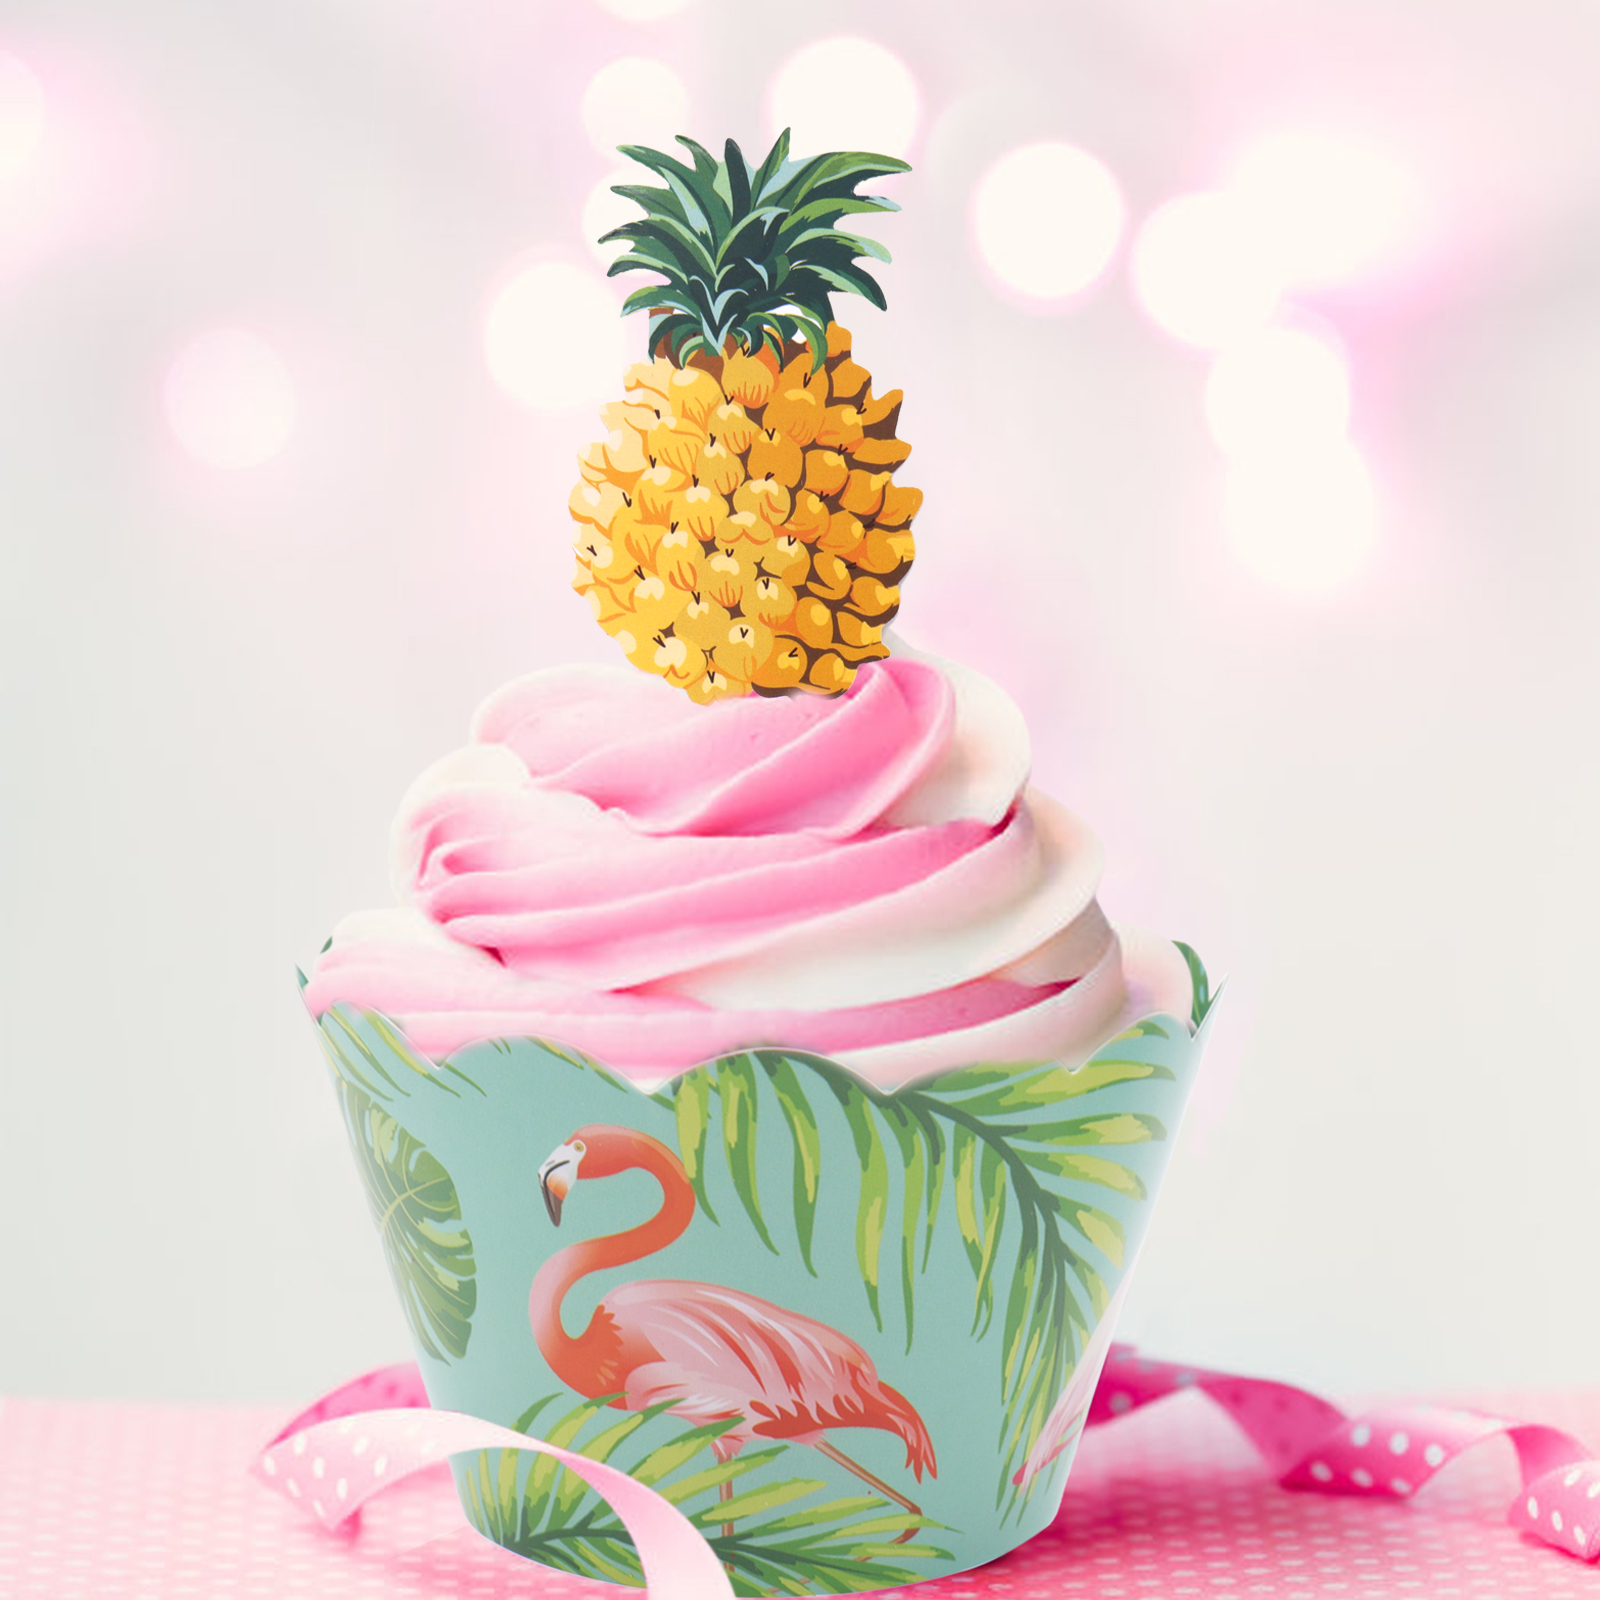 24pcs Set Paper Cupcake Wrappers Flamingo Pineapple Cake Toppers Diy Party Baby Shower Happy Birthday Decorations Party Supplies Cake Decorating Supplies Aliexpress